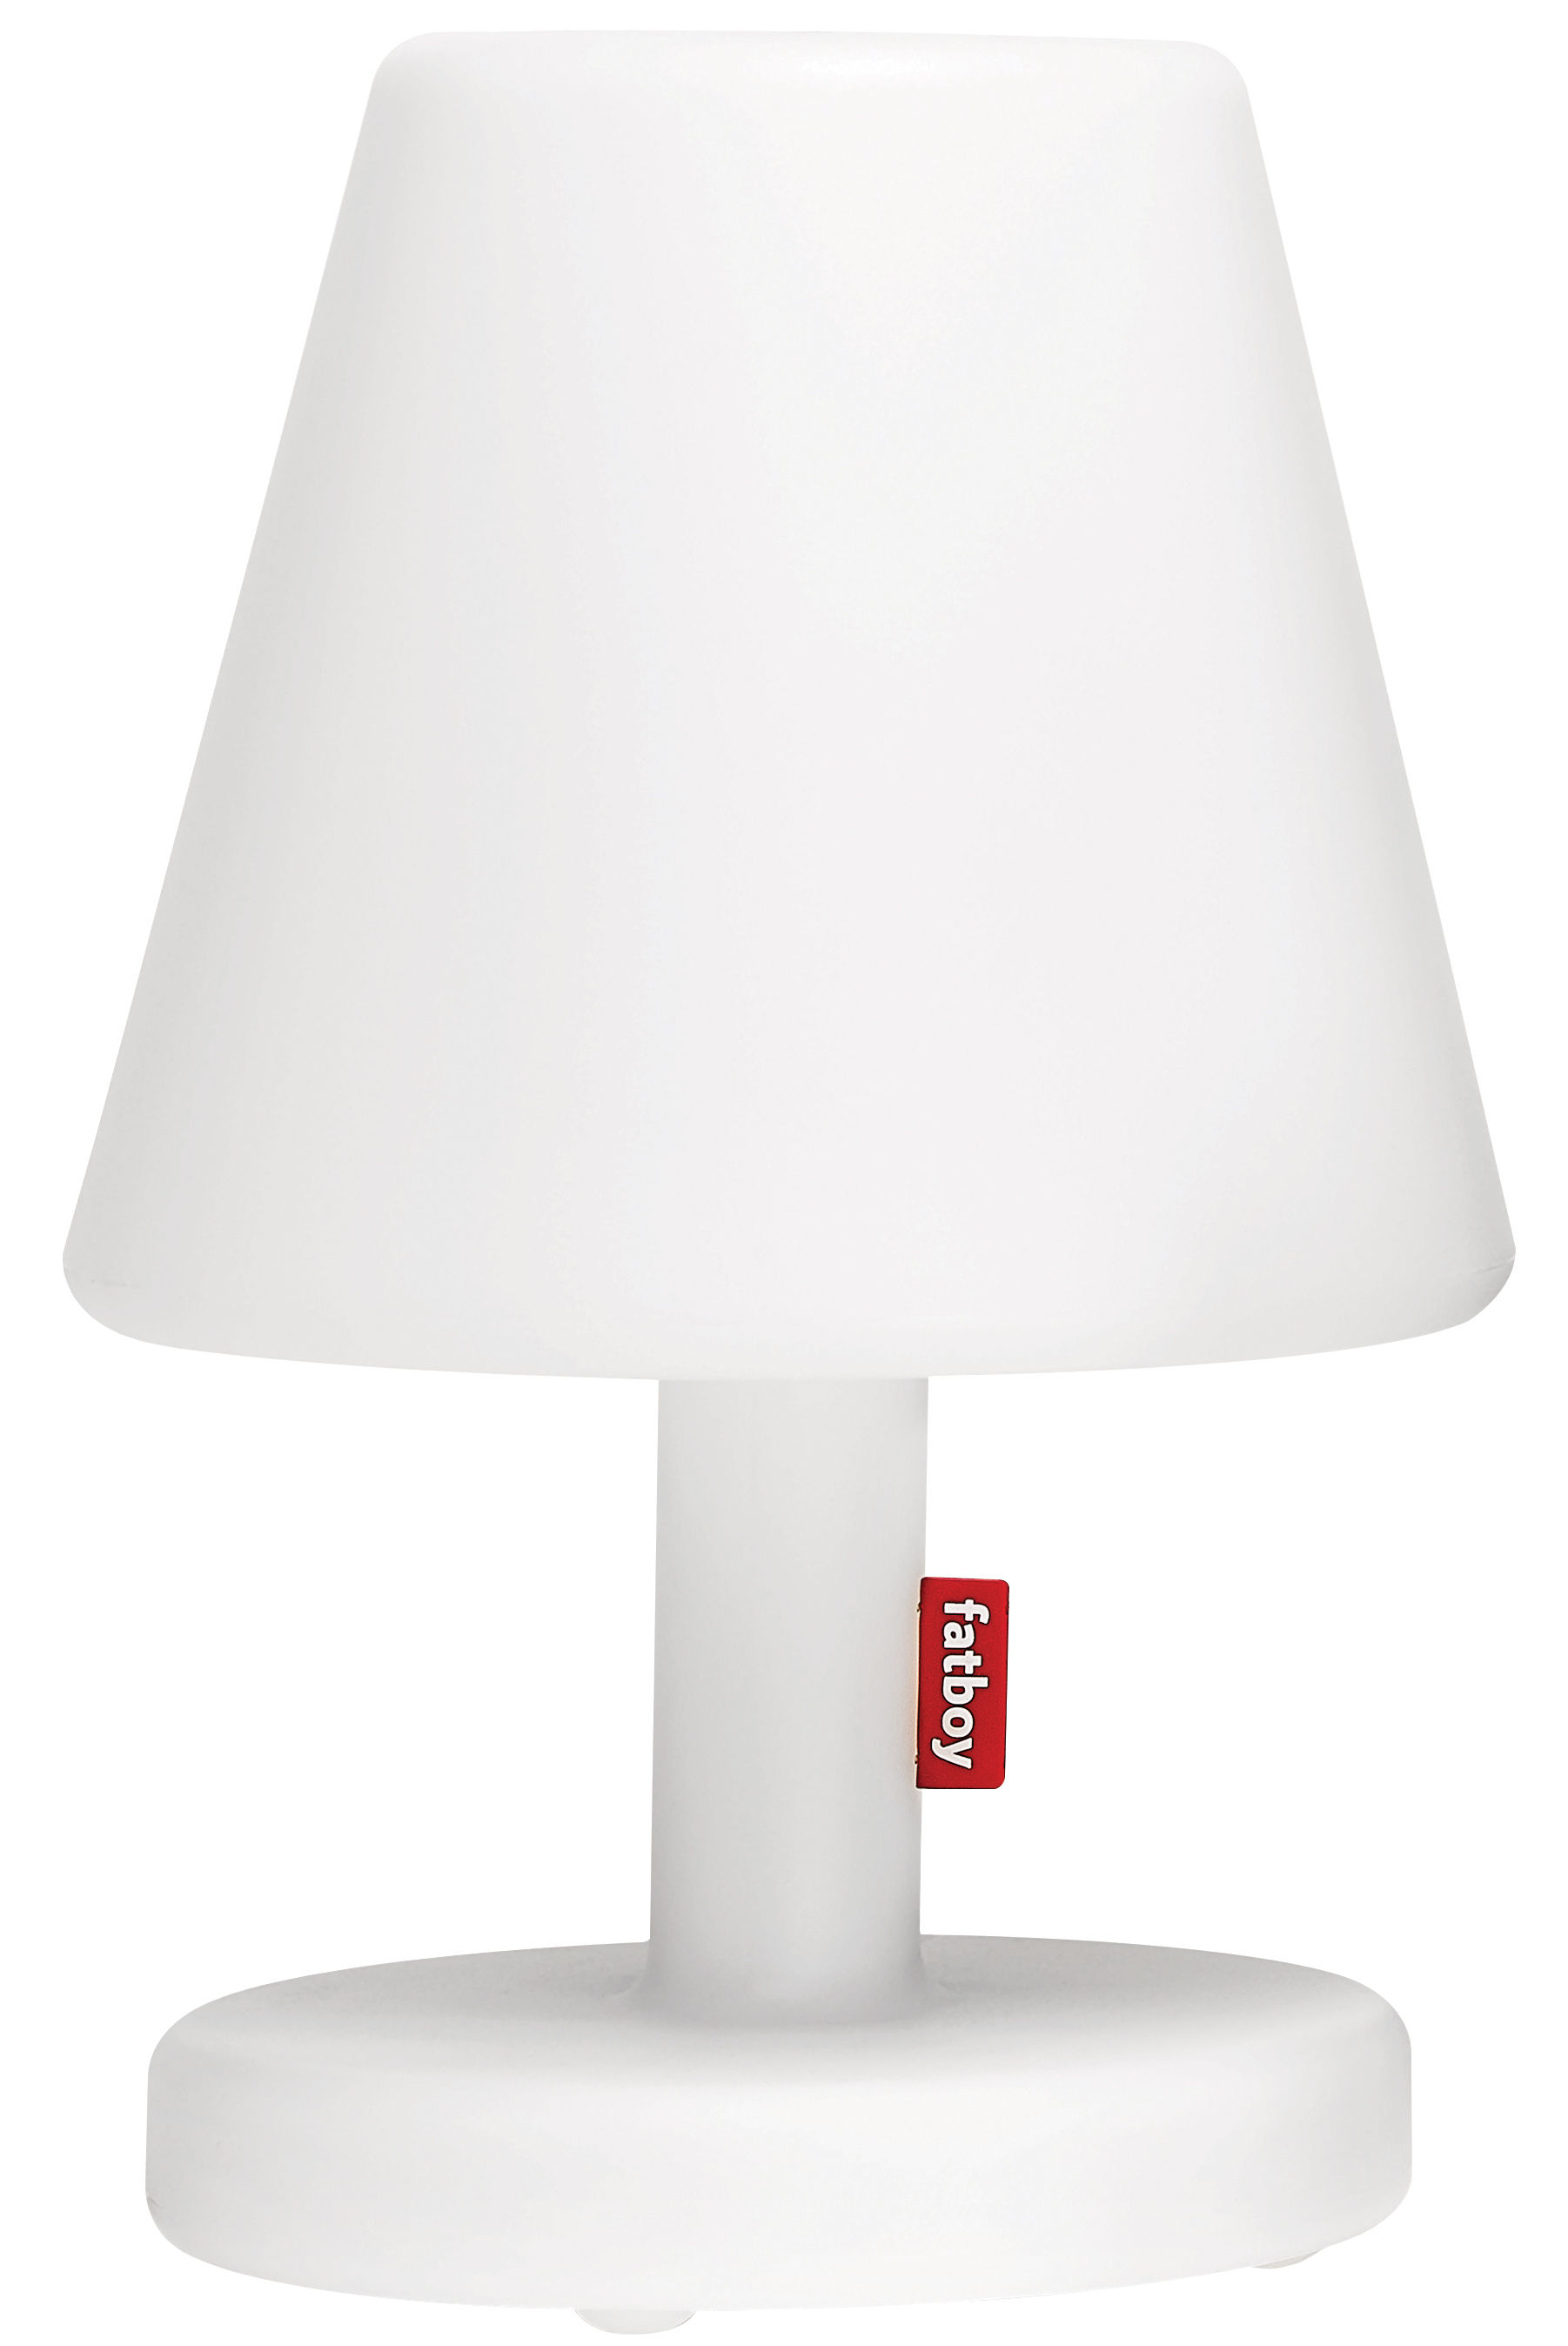 lampe edison the medium h 51 cm led blanc fatboy. Black Bedroom Furniture Sets. Home Design Ideas